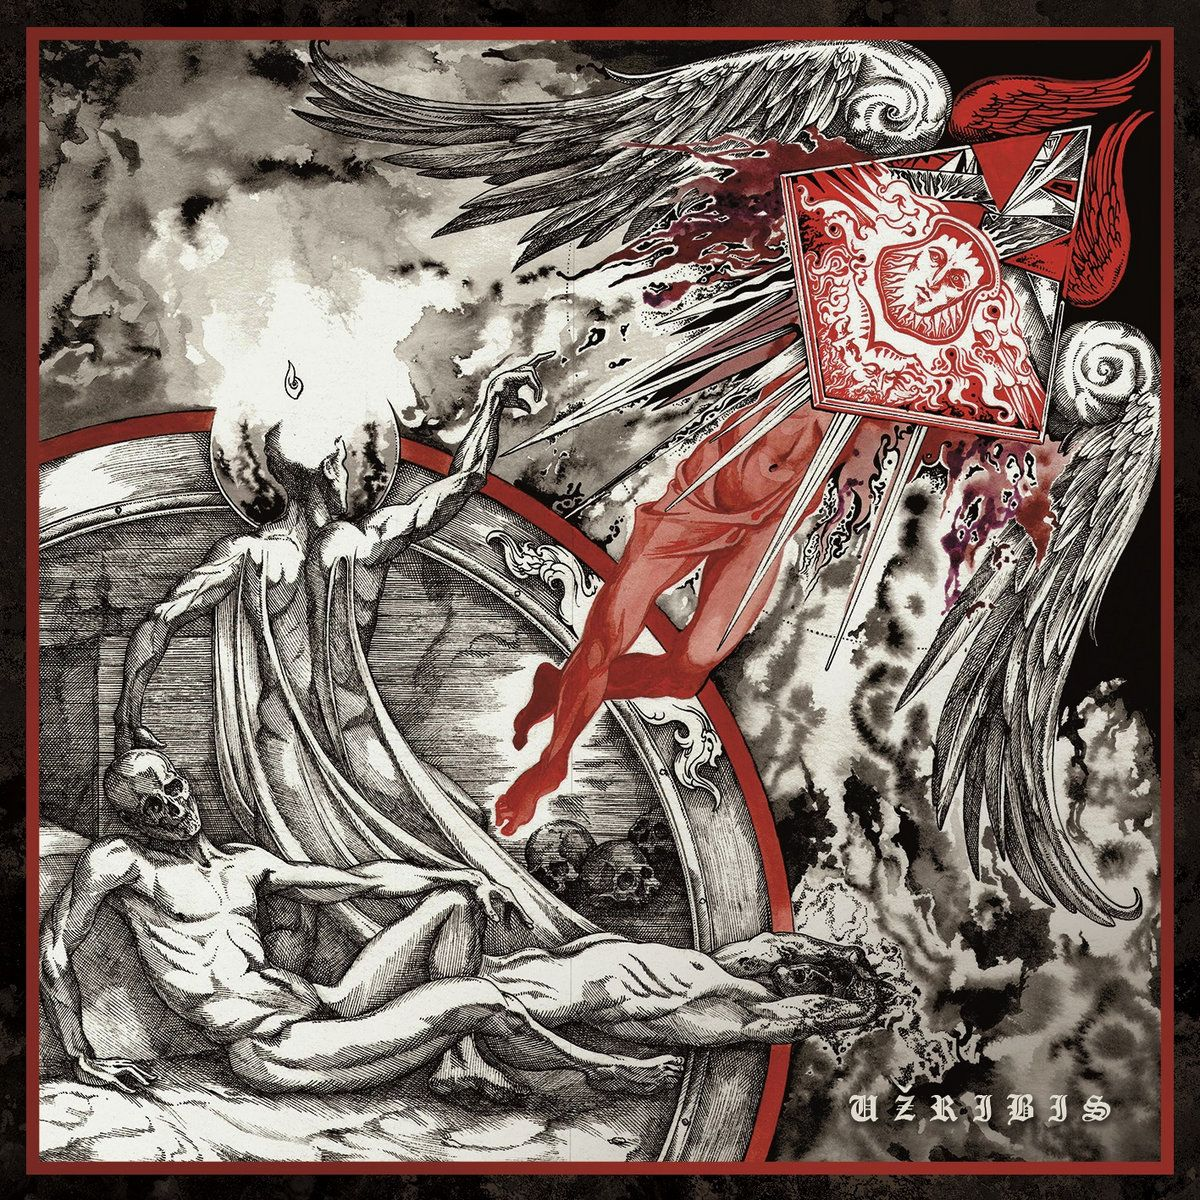 Review for Luctus - Užribis